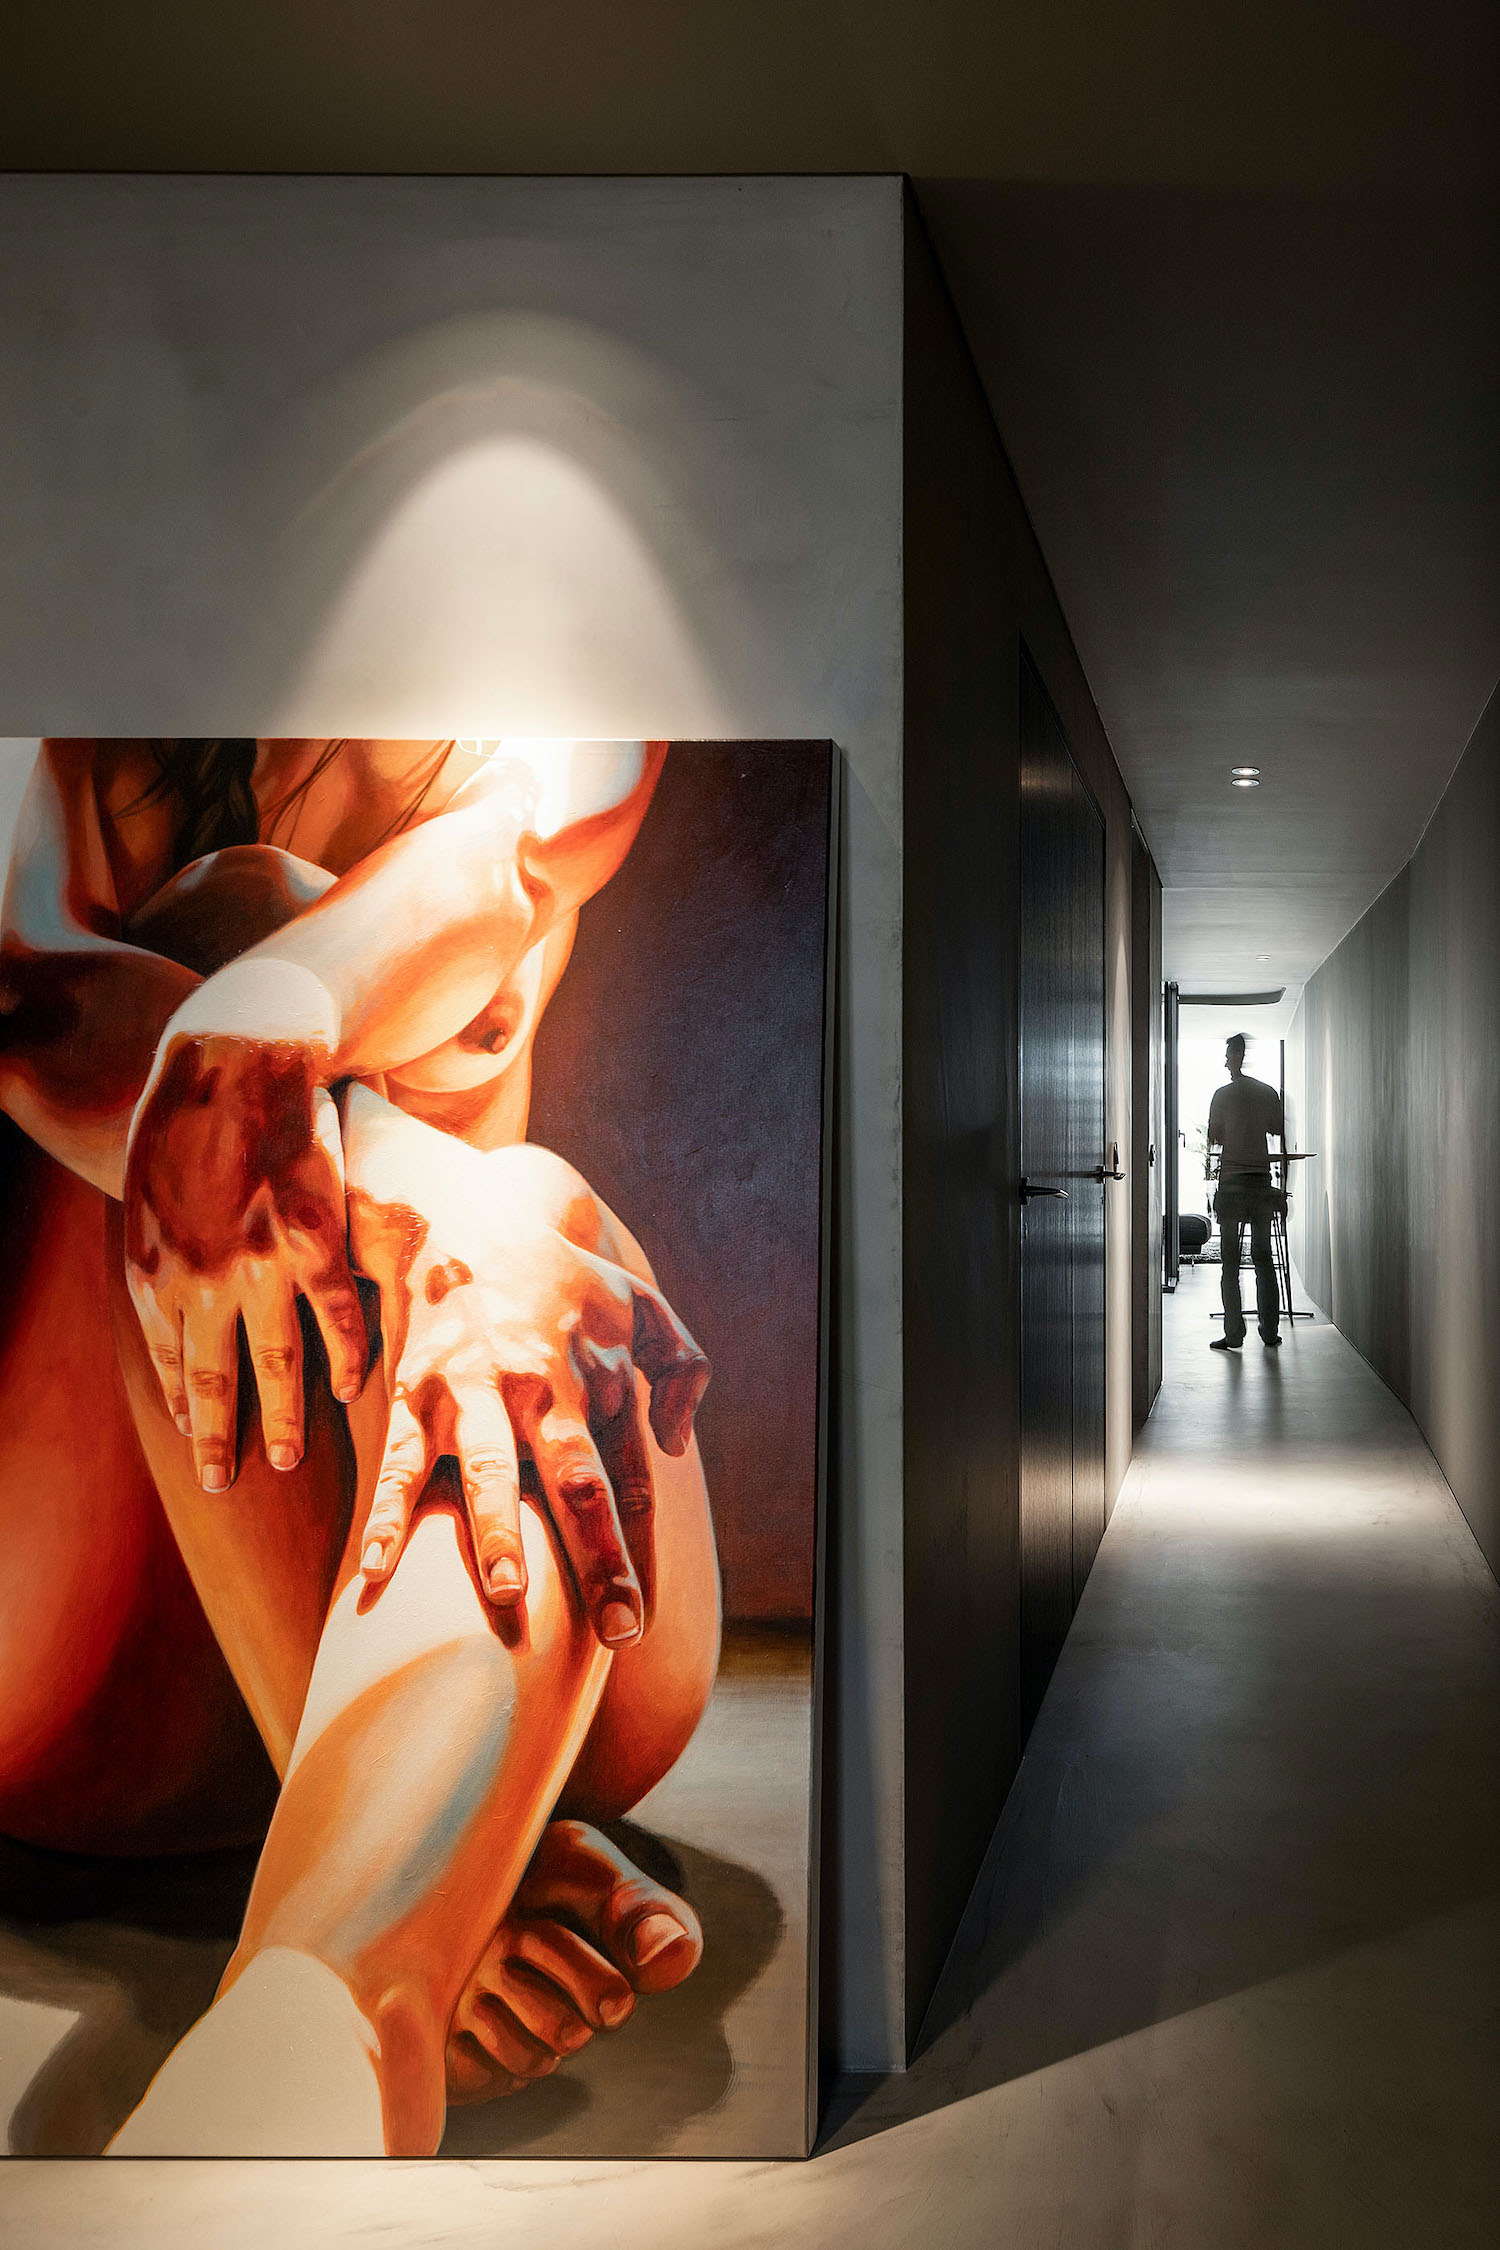 naked woman picture on the wall illuminated with artificial light